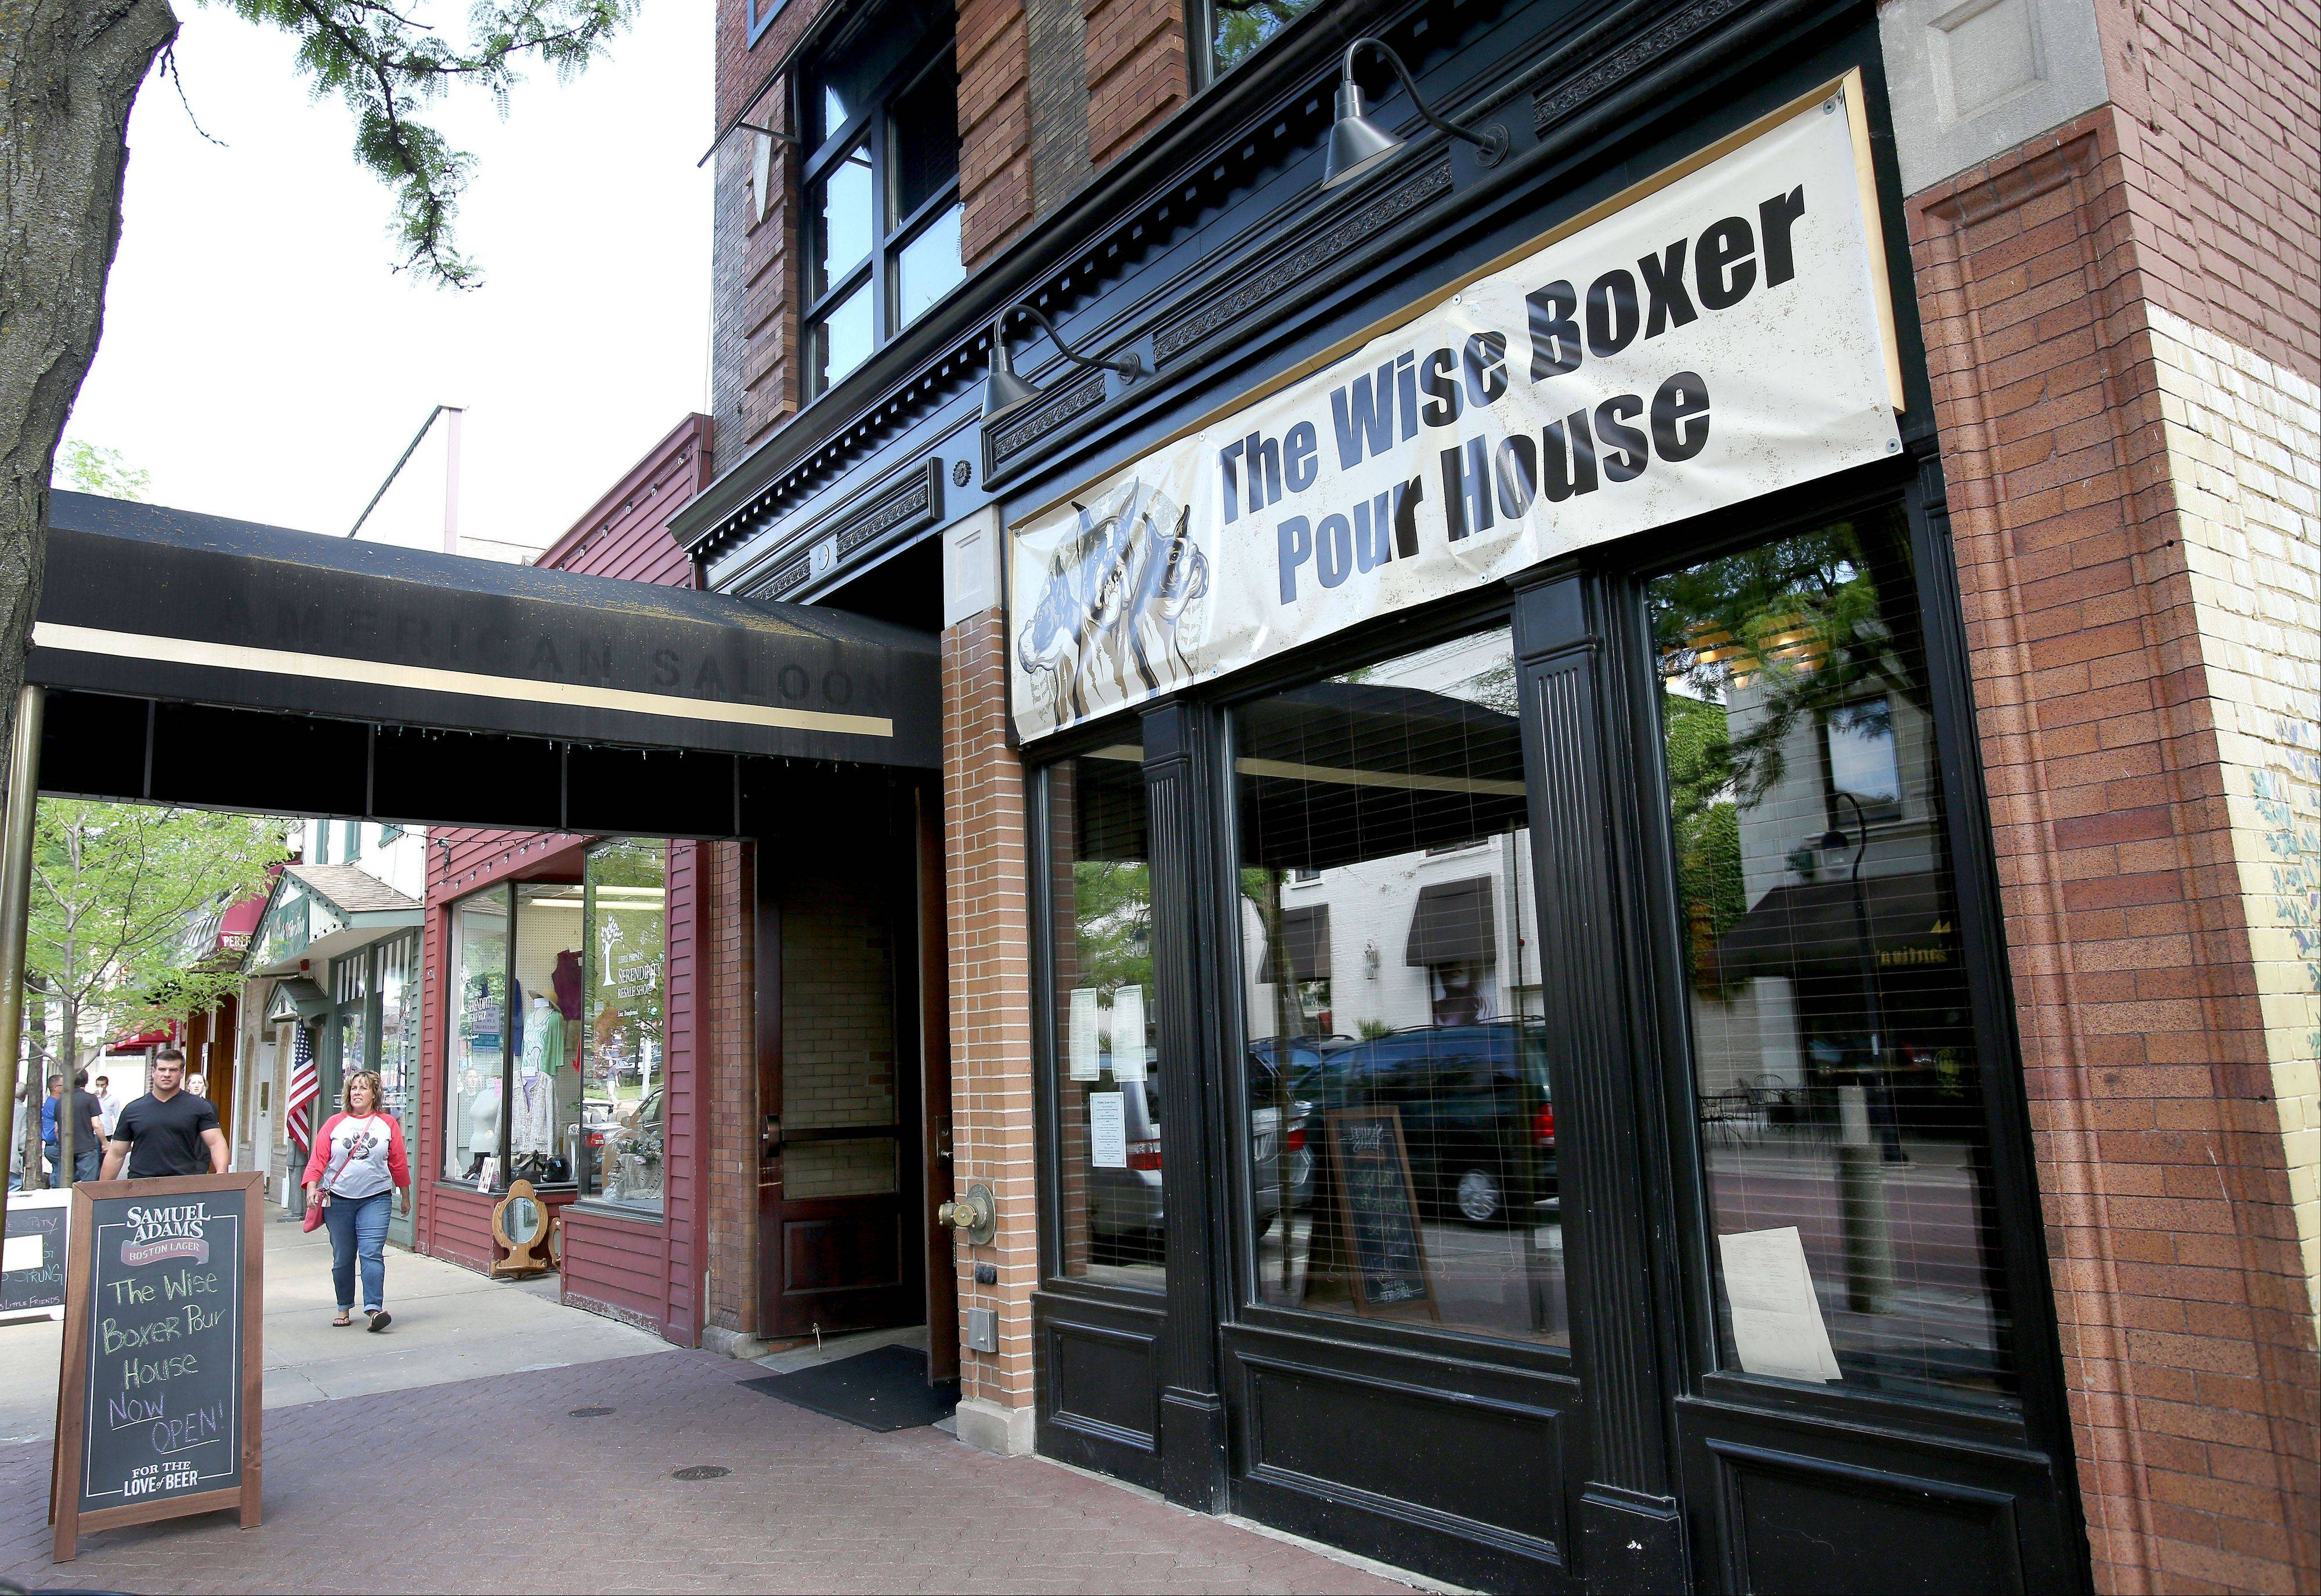 Naperville businessman Jim Bergeron opened the Wise Boxer Pour House on May 31 at the former site of the controversial BlackFinn American Saloon on Jefferson Avenue in downtown Naperville. Bergeron says the new pub focuses on handmade food and craft beer.